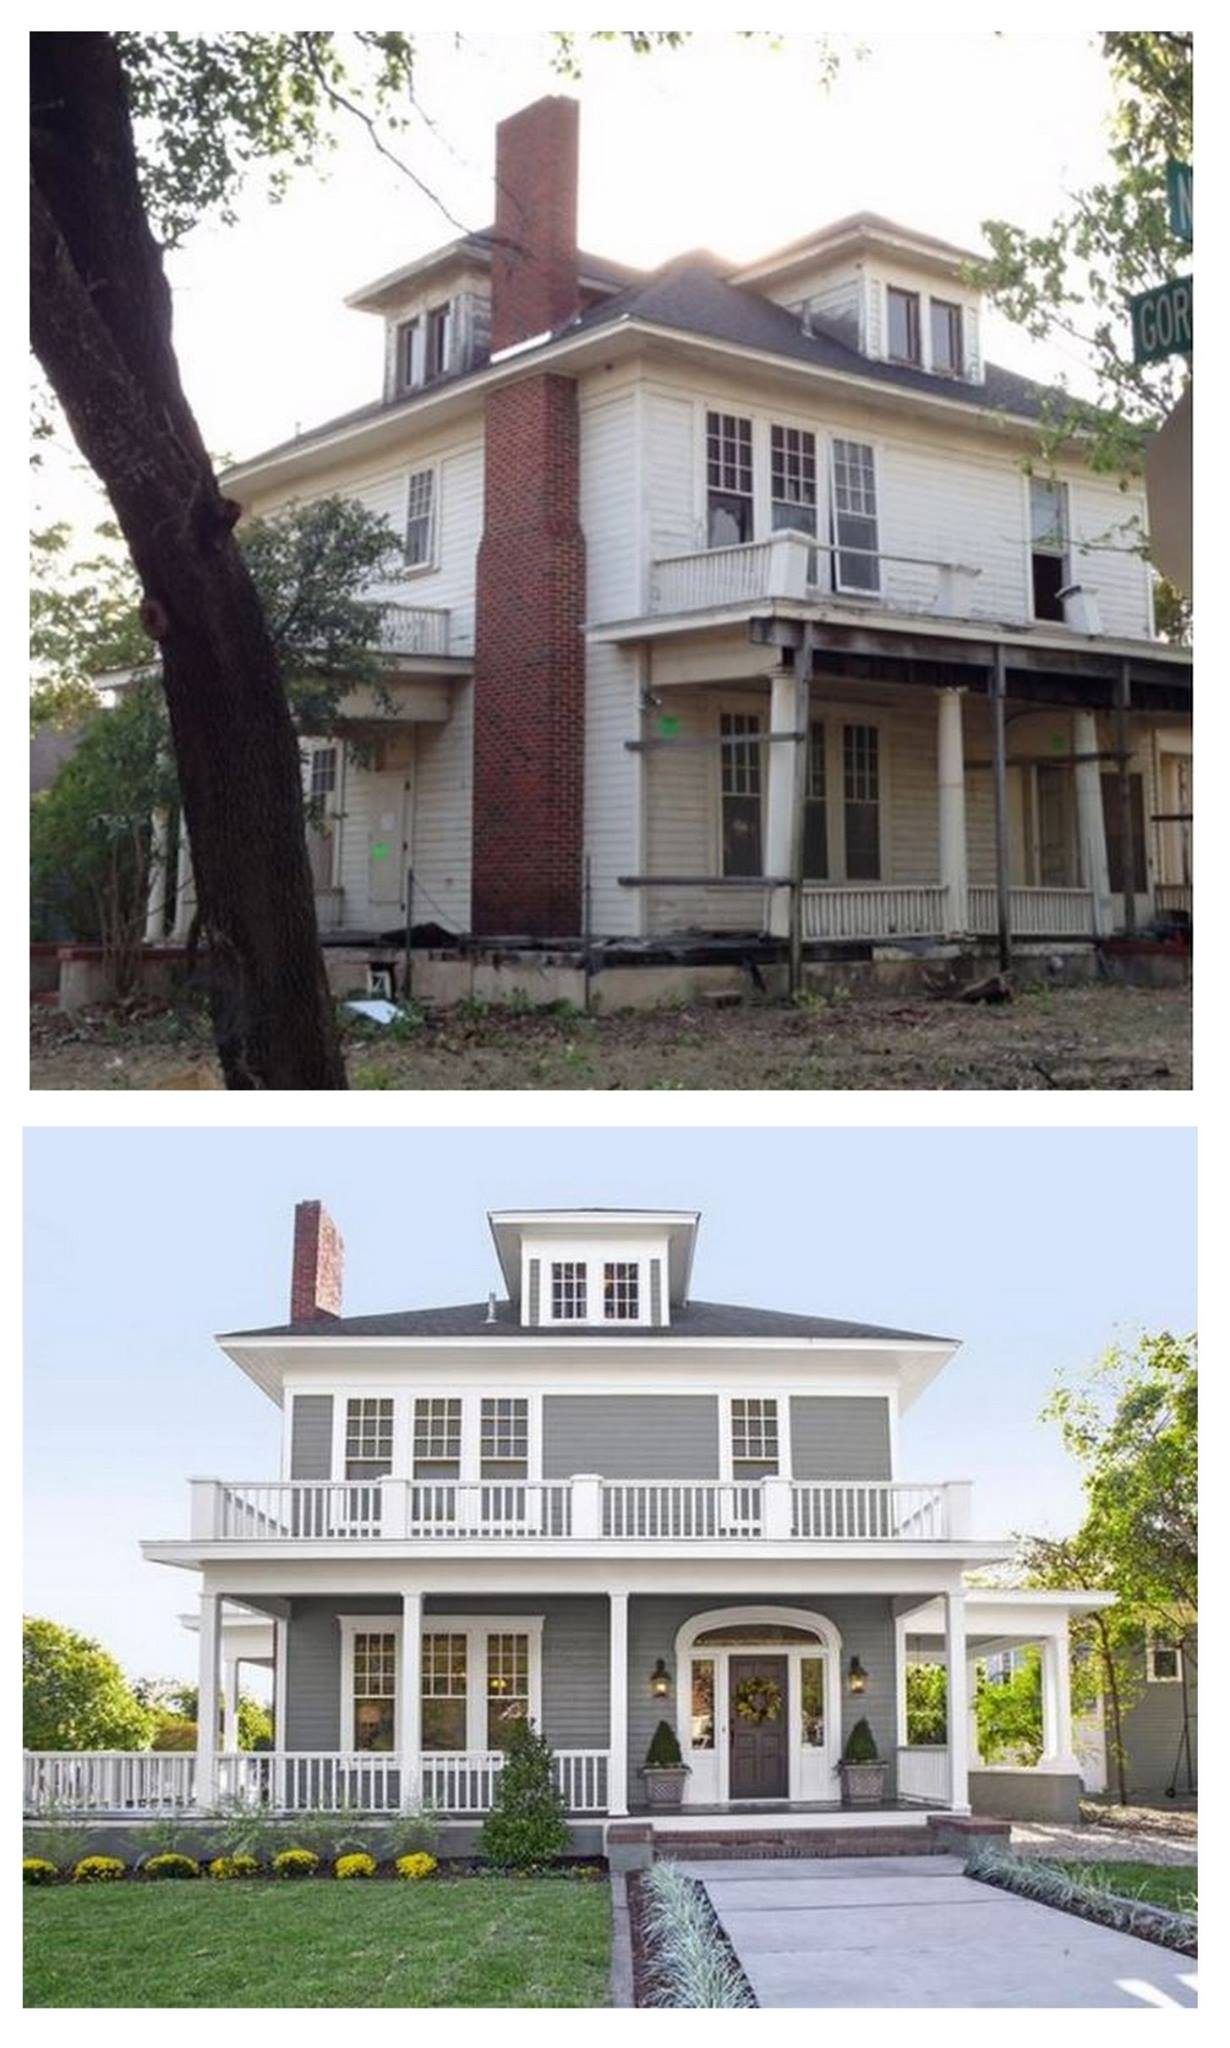 Chip and Joanna Gaines Before and After Renovation.